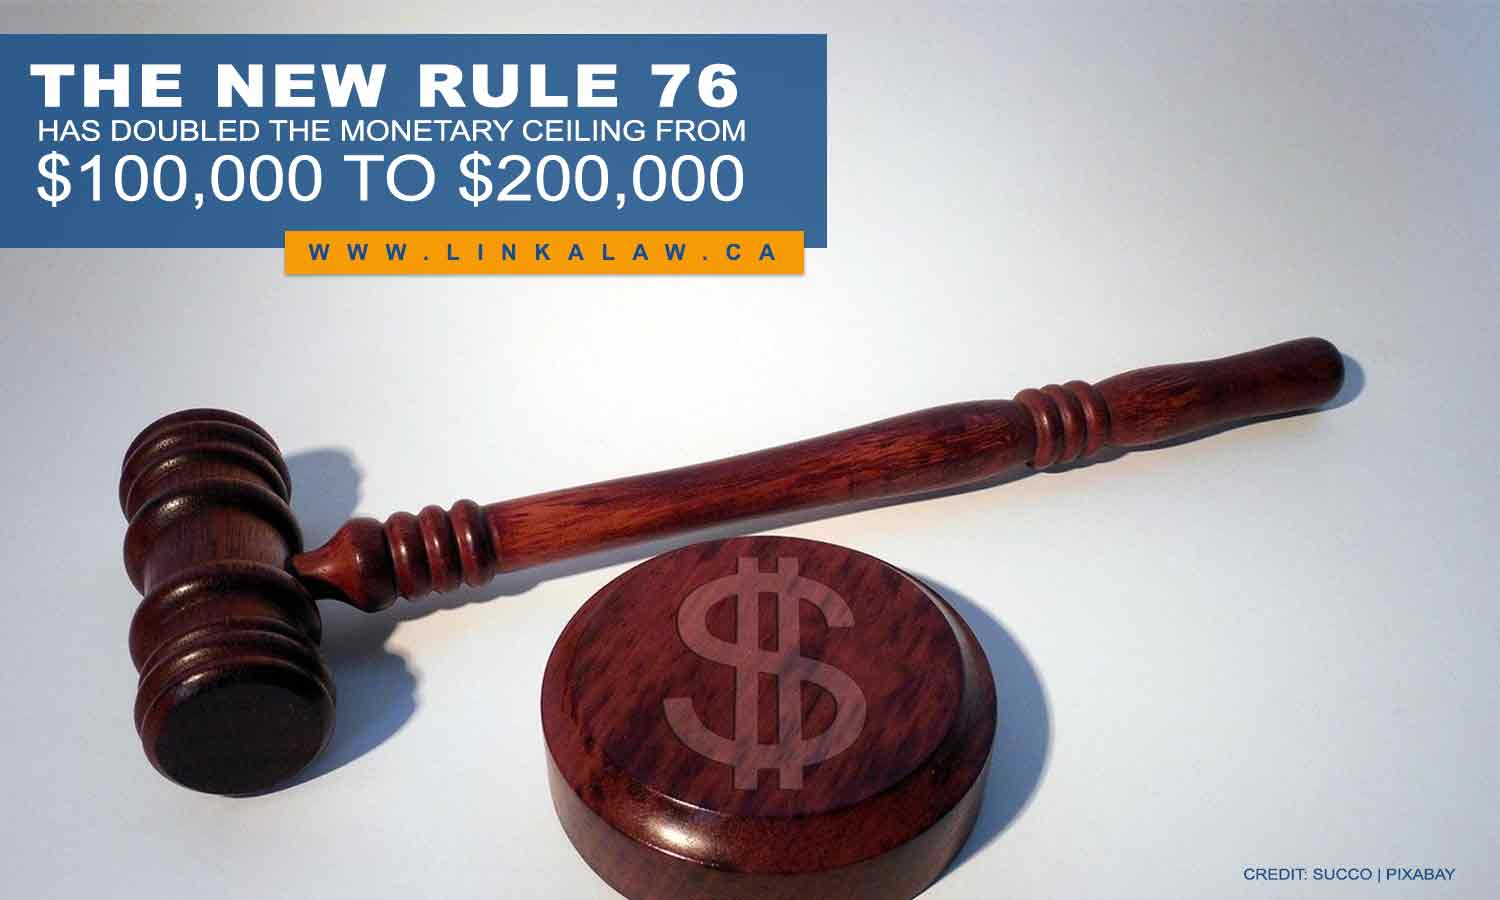 The new Rule 76 has doubled the monetary ceiling from $100,000 to $200,000